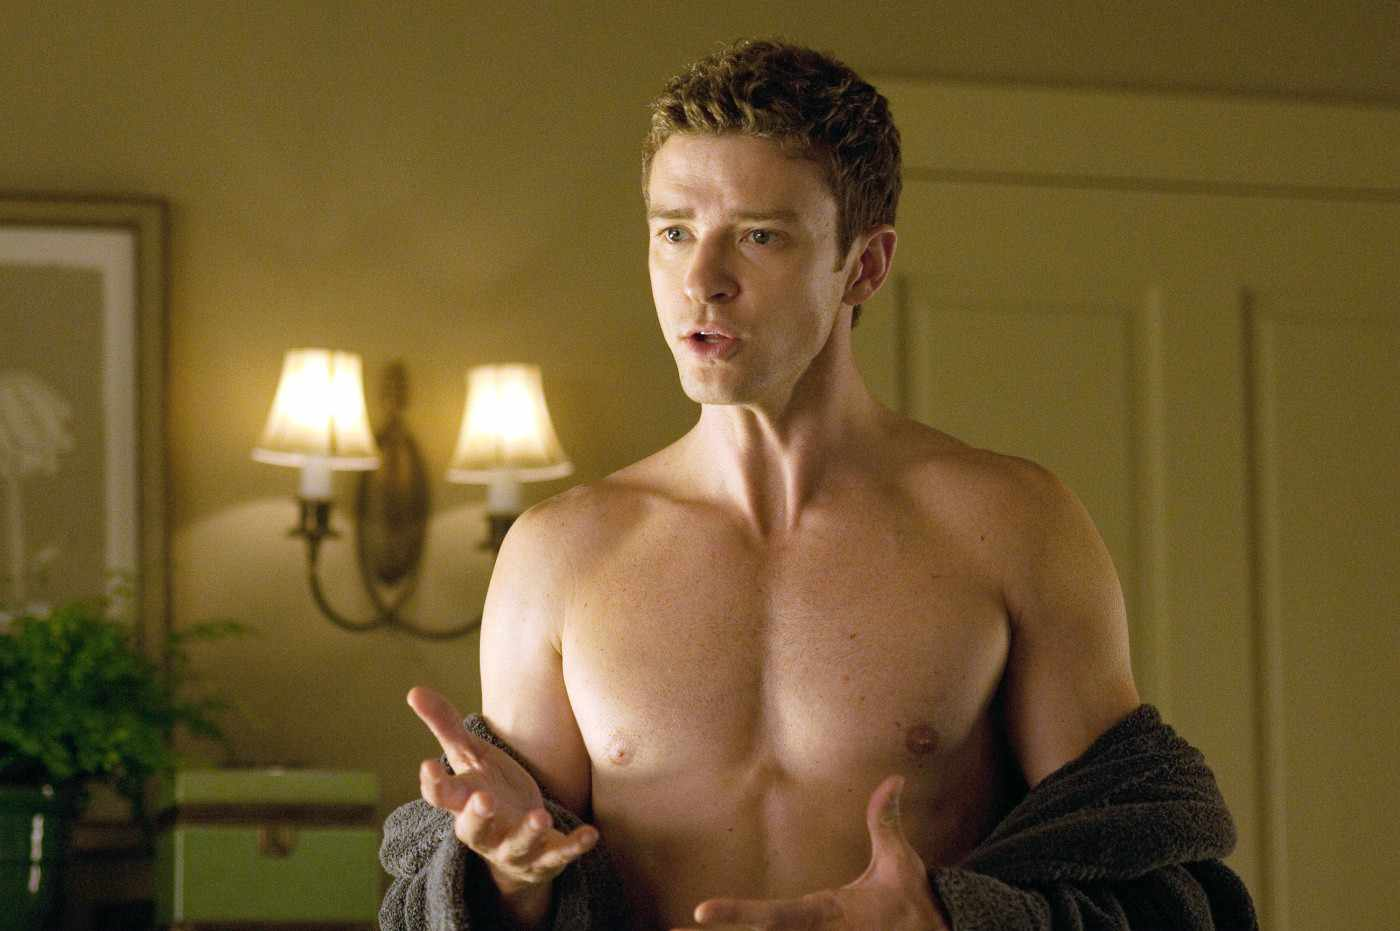 http://2.bp.blogspot.com/-79sXp7hVoxo/TmiHyTnkBGI/AAAAAAAAEGk/bZGtP3vivpA/s1600/justin+timberlake+shirtless+at+friends+with+benefits+movie.jpg